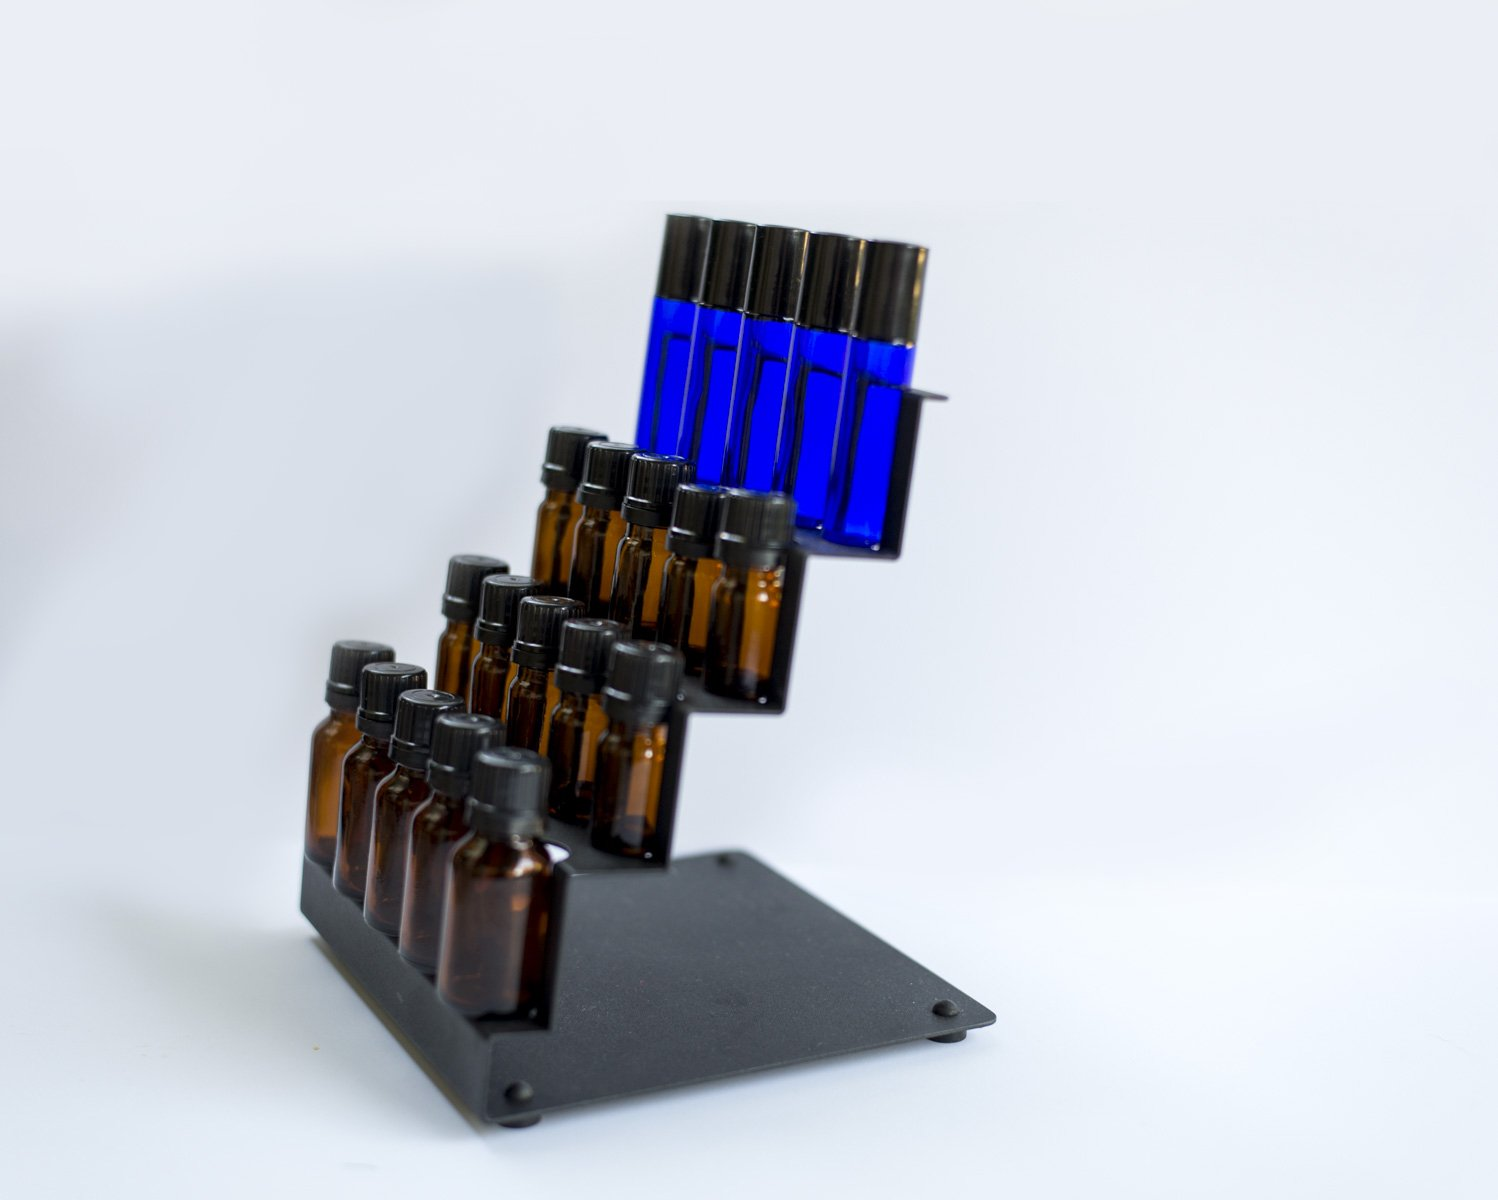 Essential Oil Counter Storage Rack for Organizing and Storing Oils - Holds 20 bottles - Stores 5 ml to 15 ml and Rollerball Bottles - Standing Display Rack for Home and Office (Black)